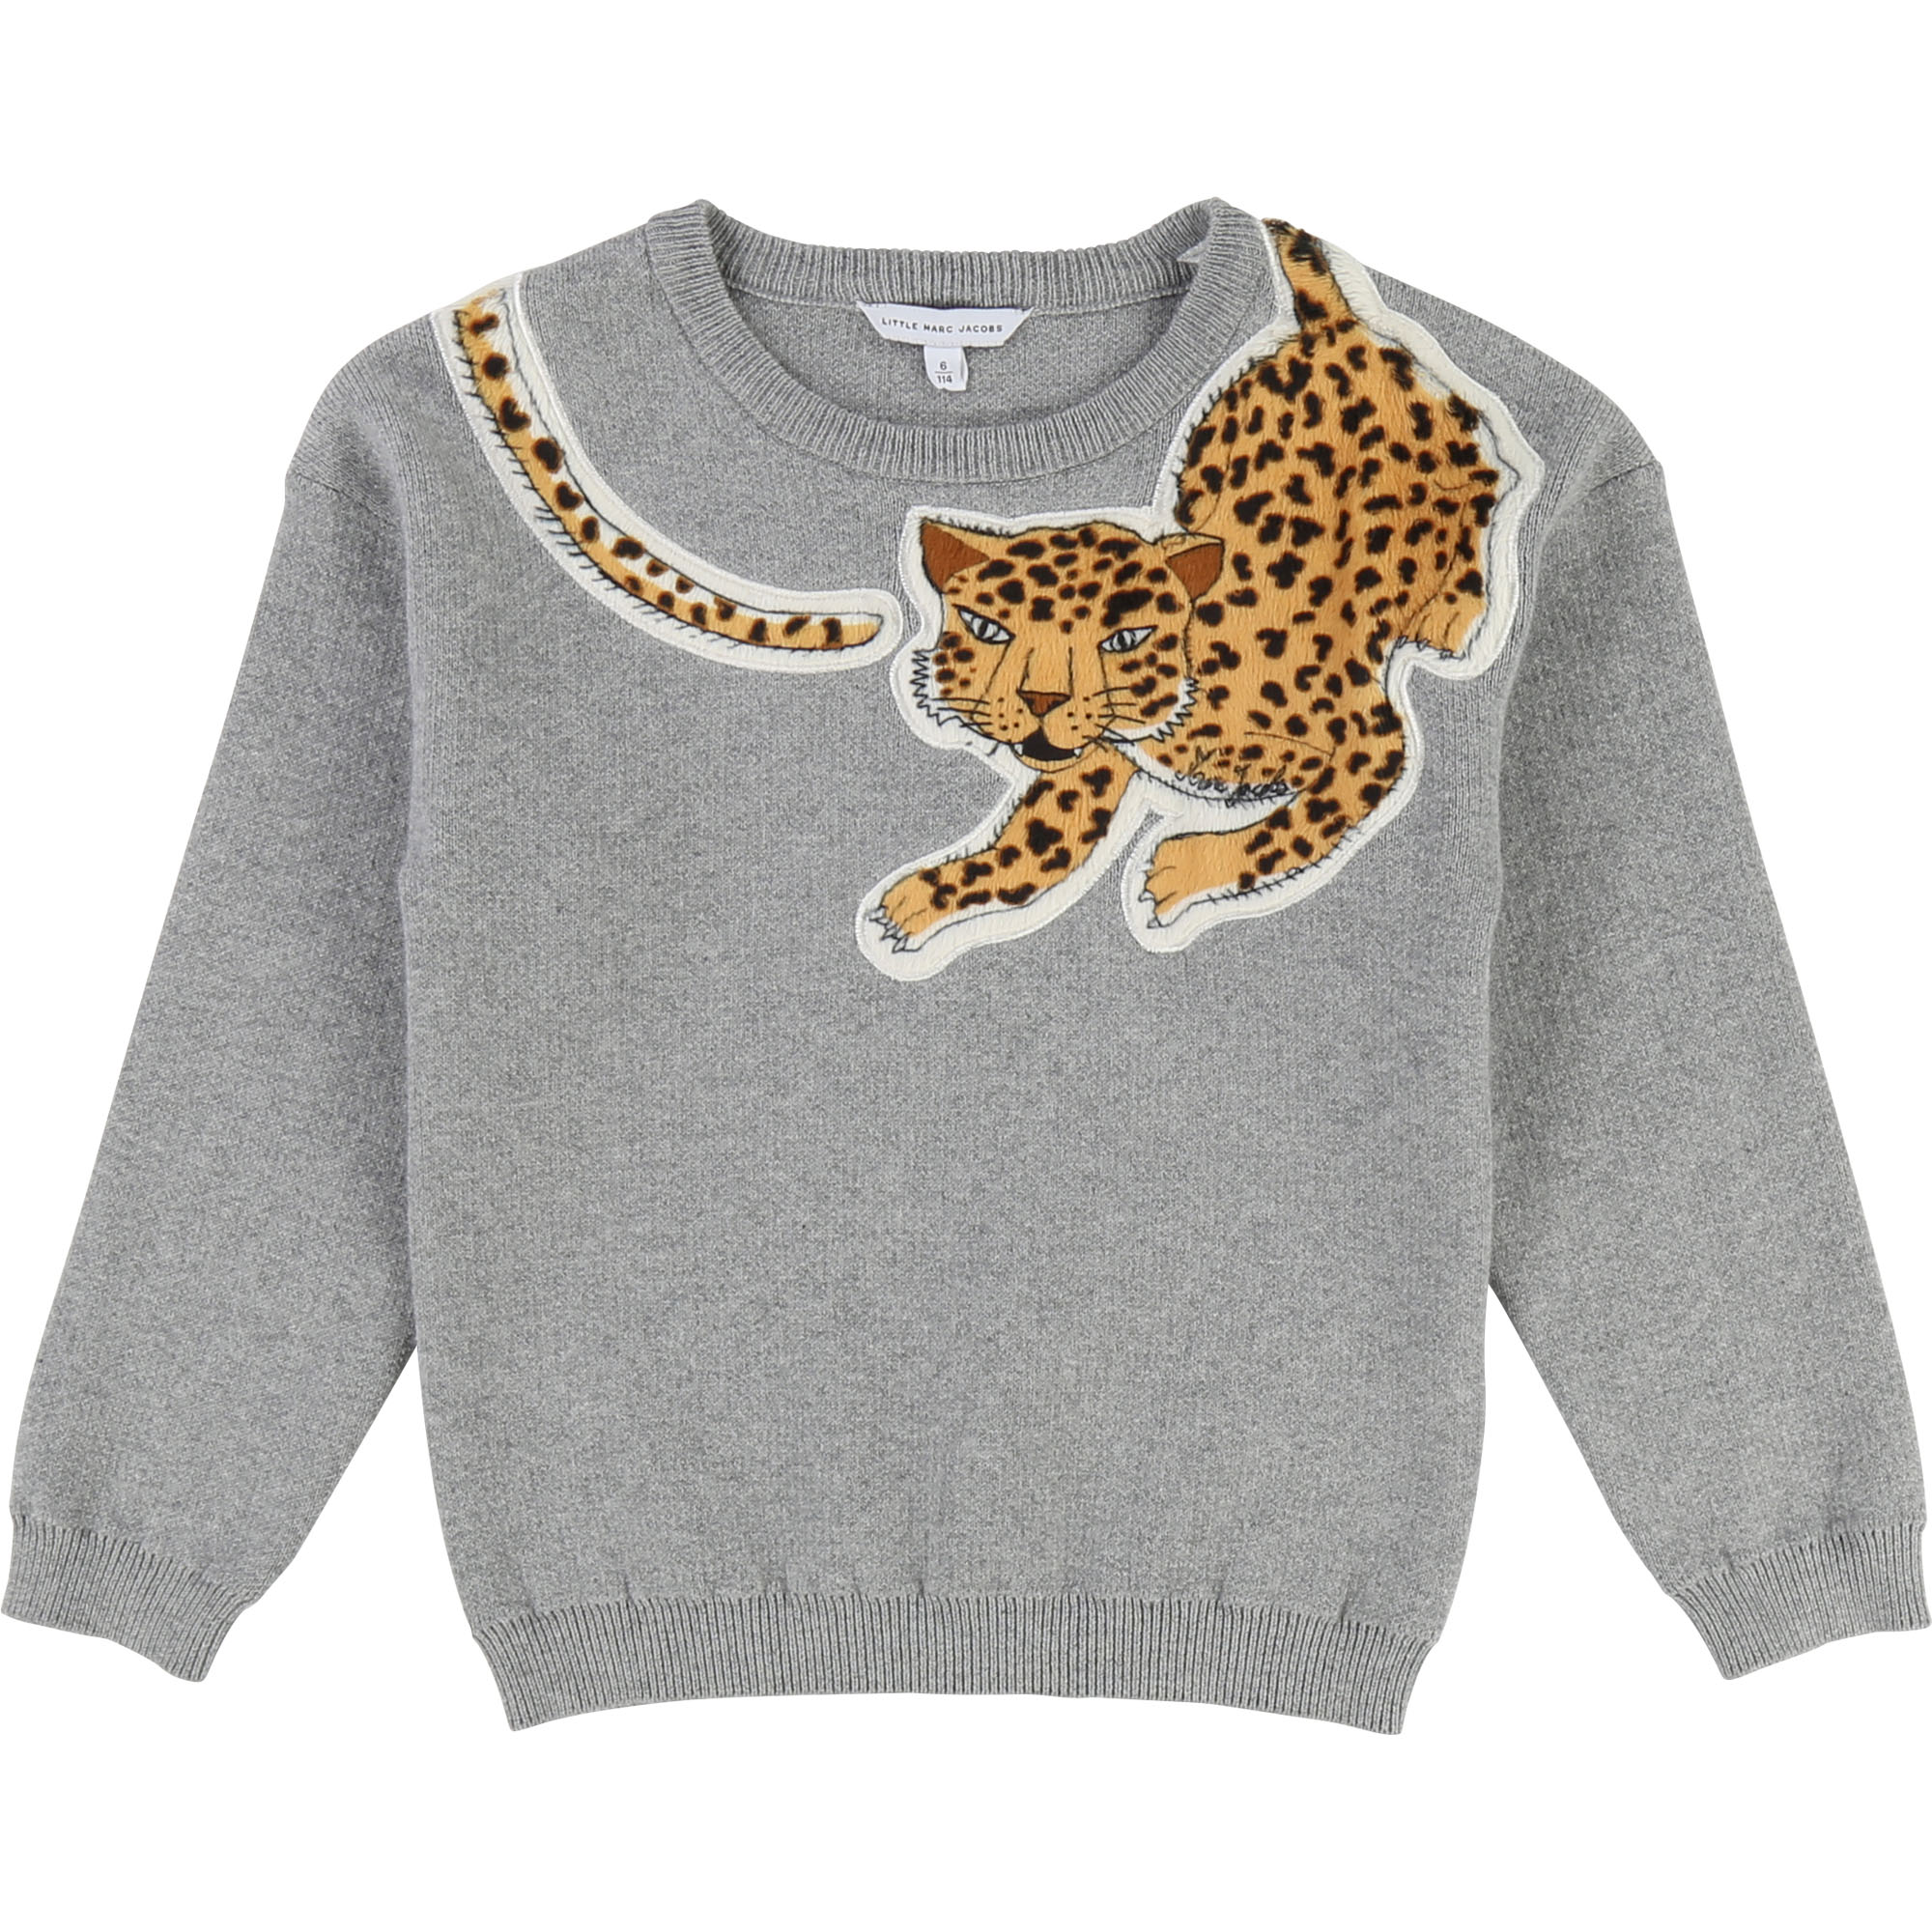 Knit jumper LITTLE MARC JACOBS for GIRL